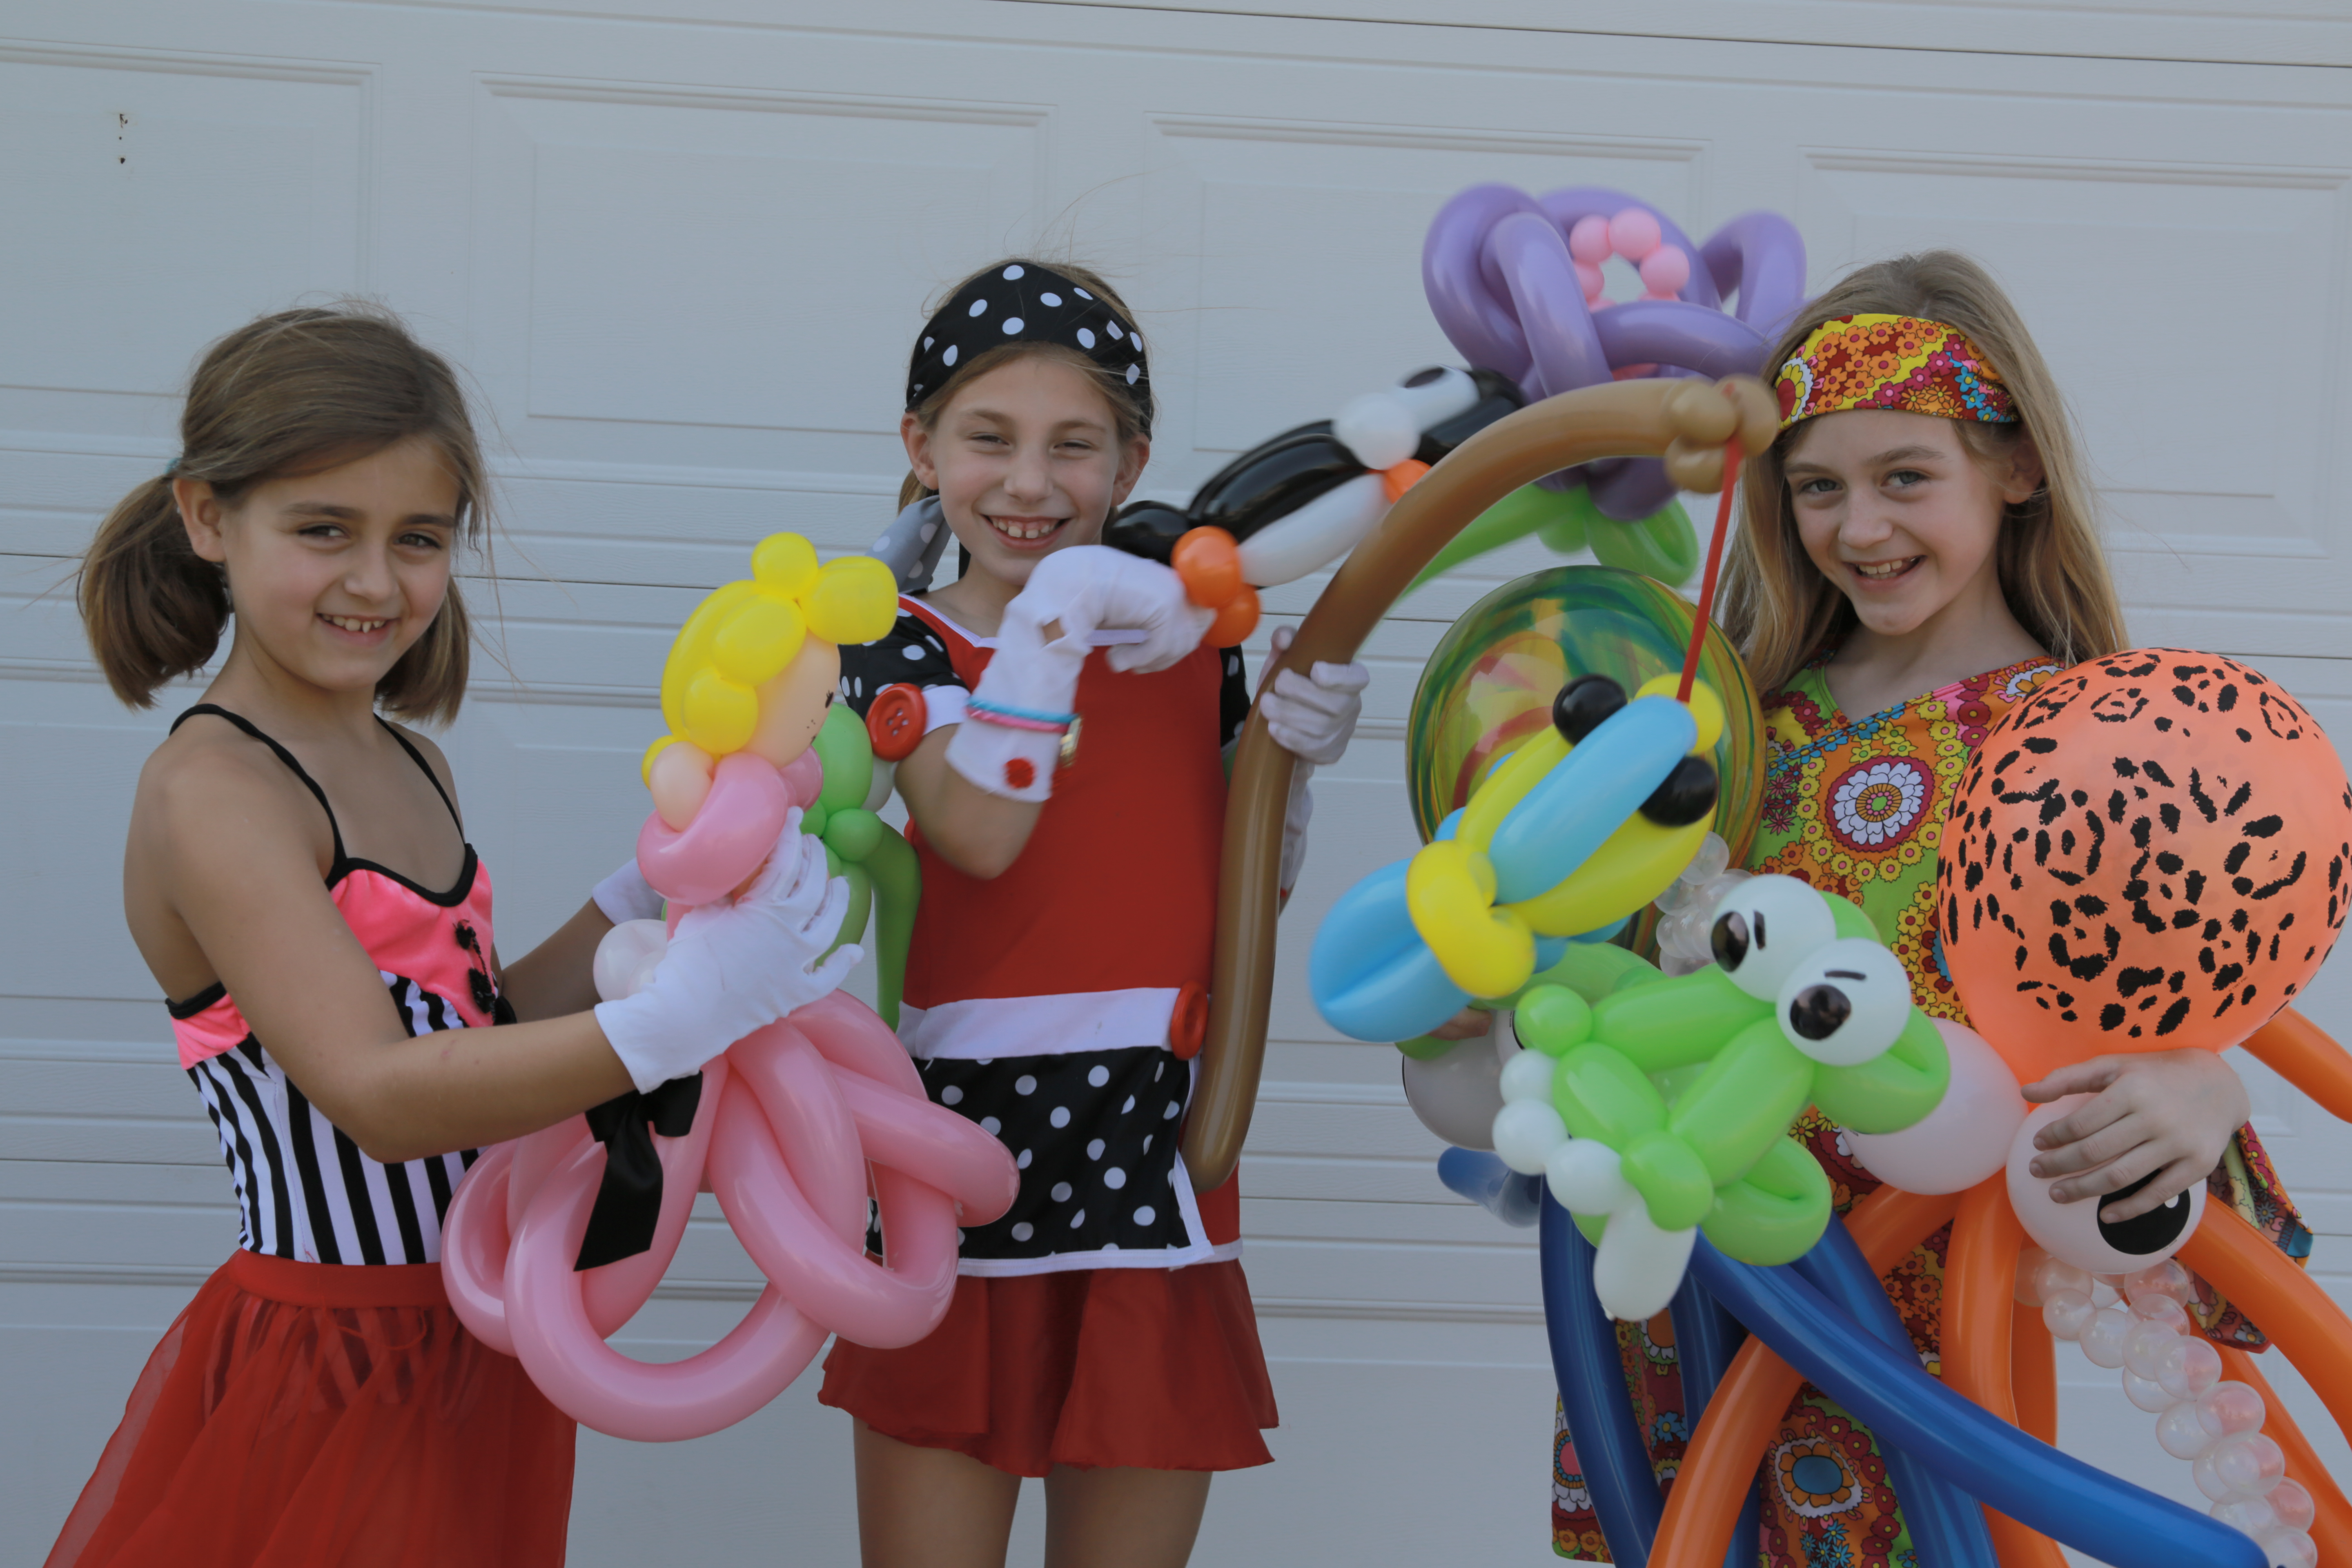 3 girls with balloon creations